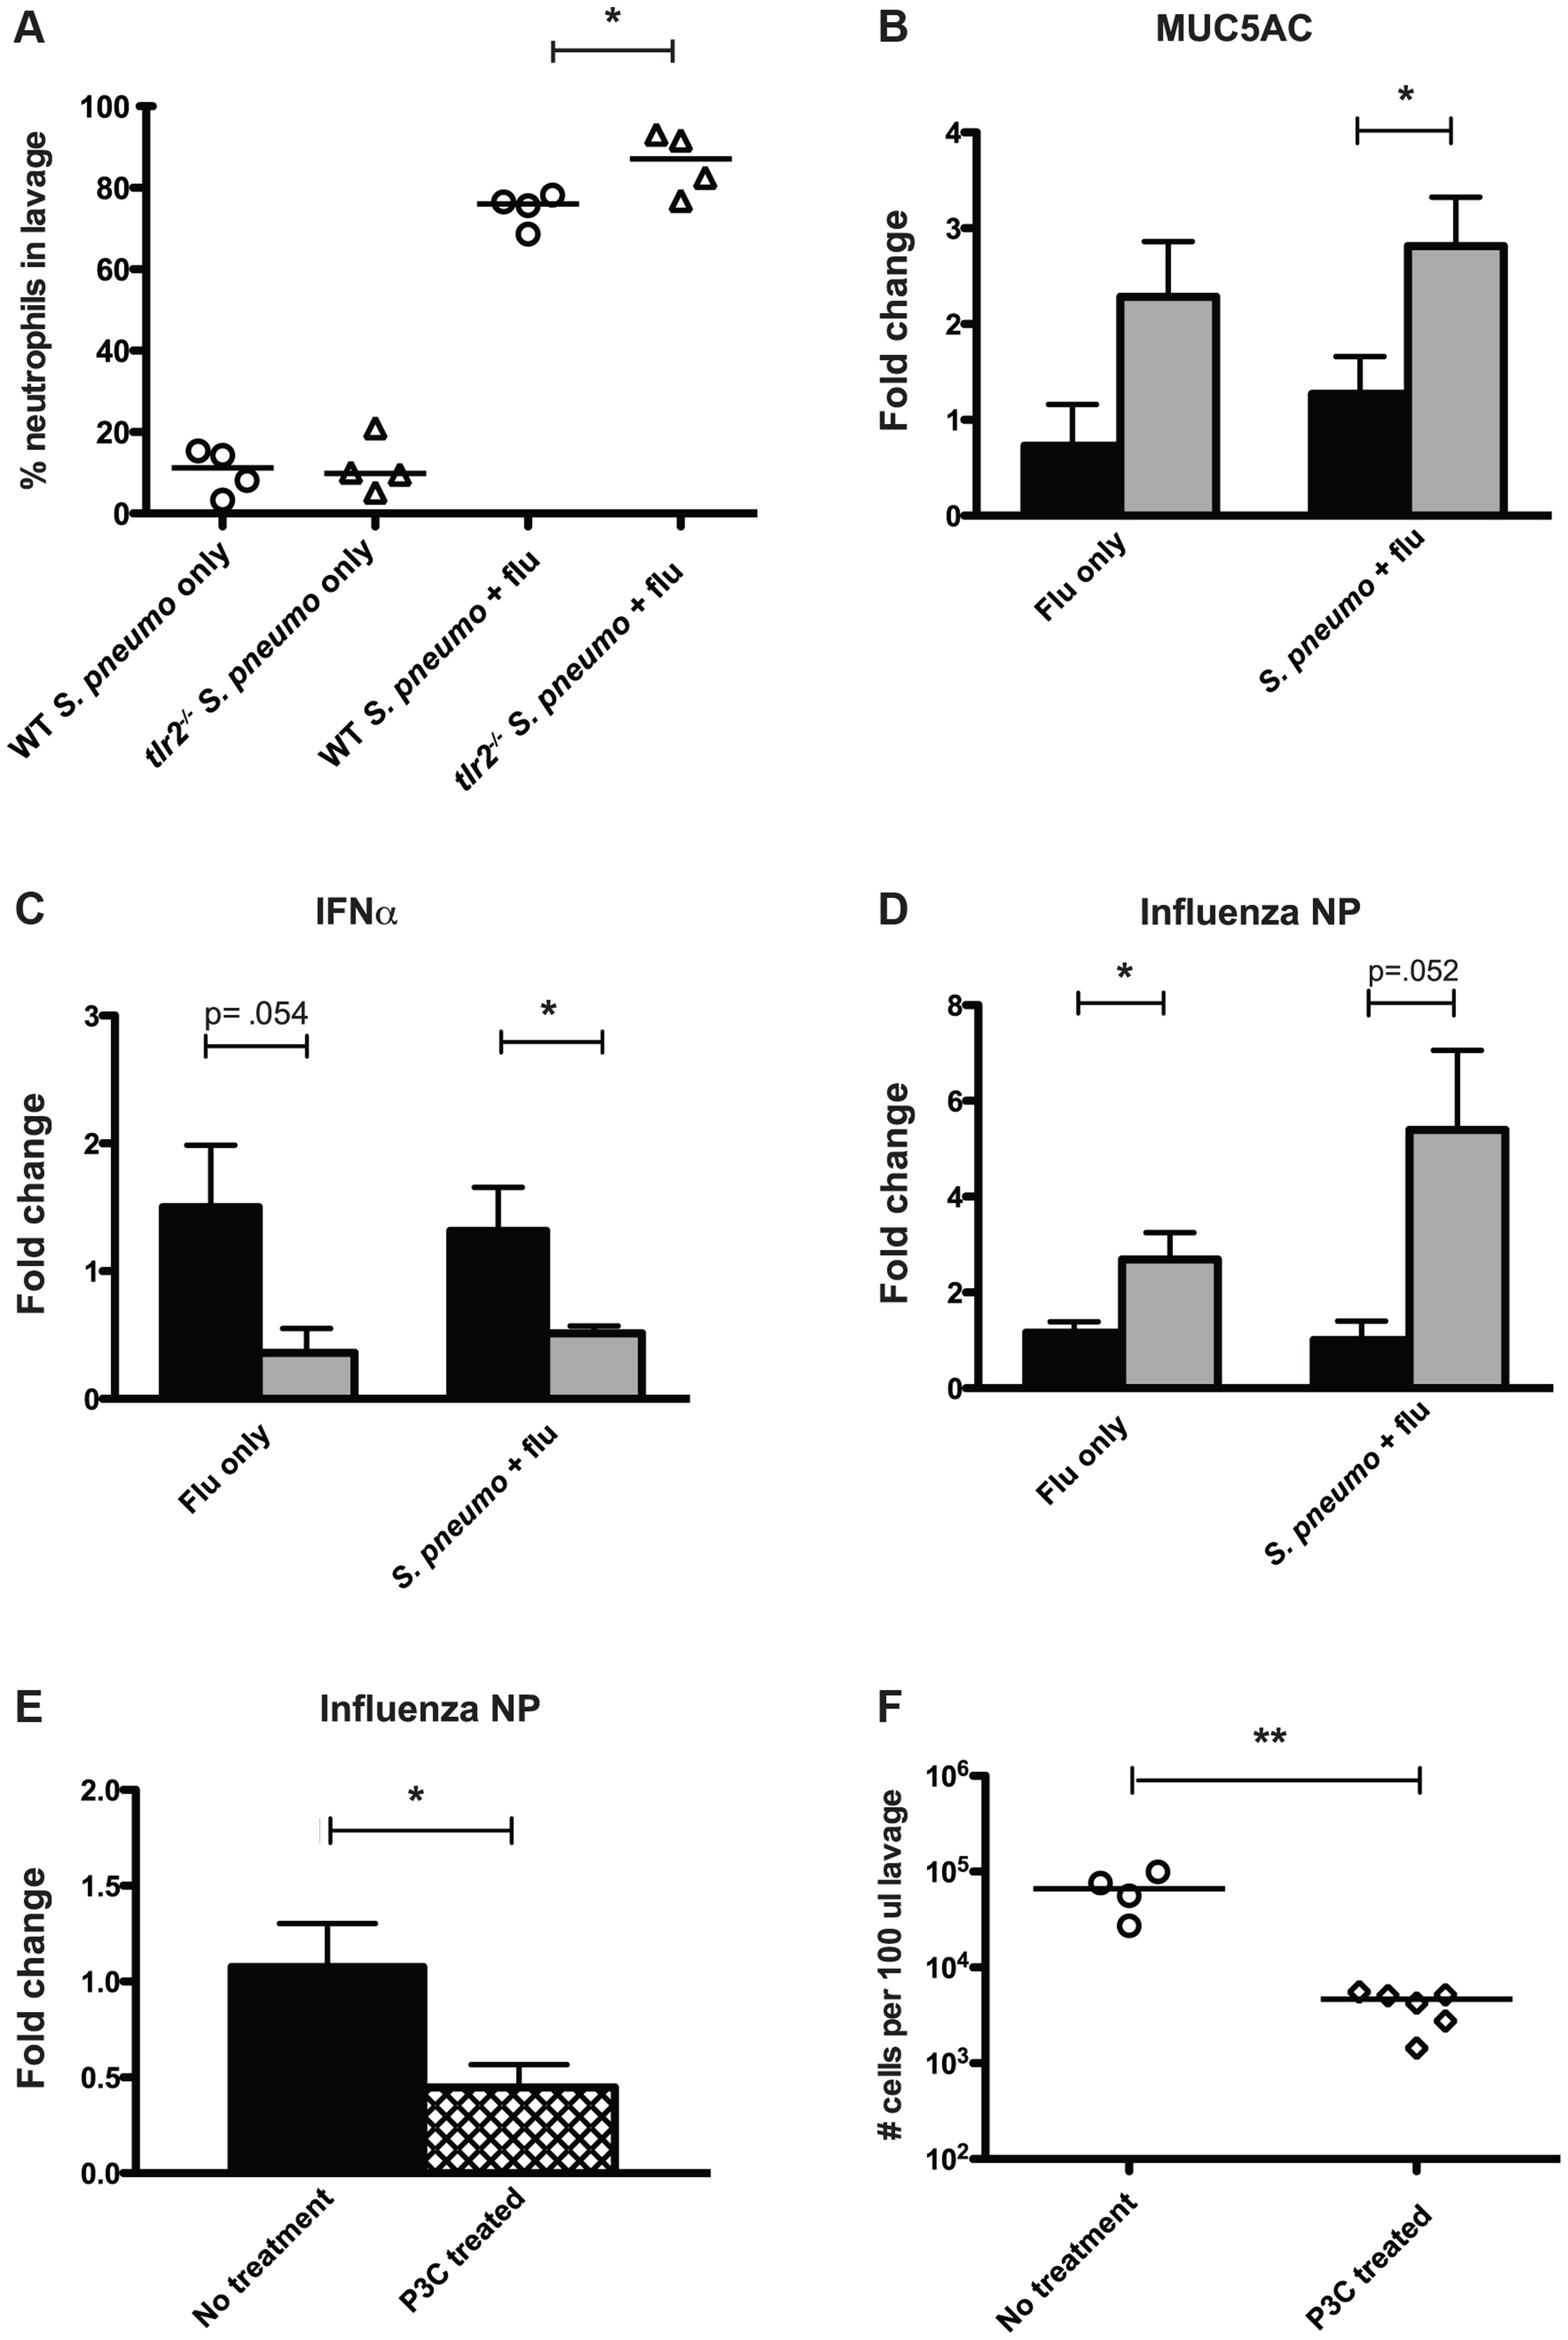 Mice deficient in TLR2 display increased inflammation and increased viral titers following influenza infection.